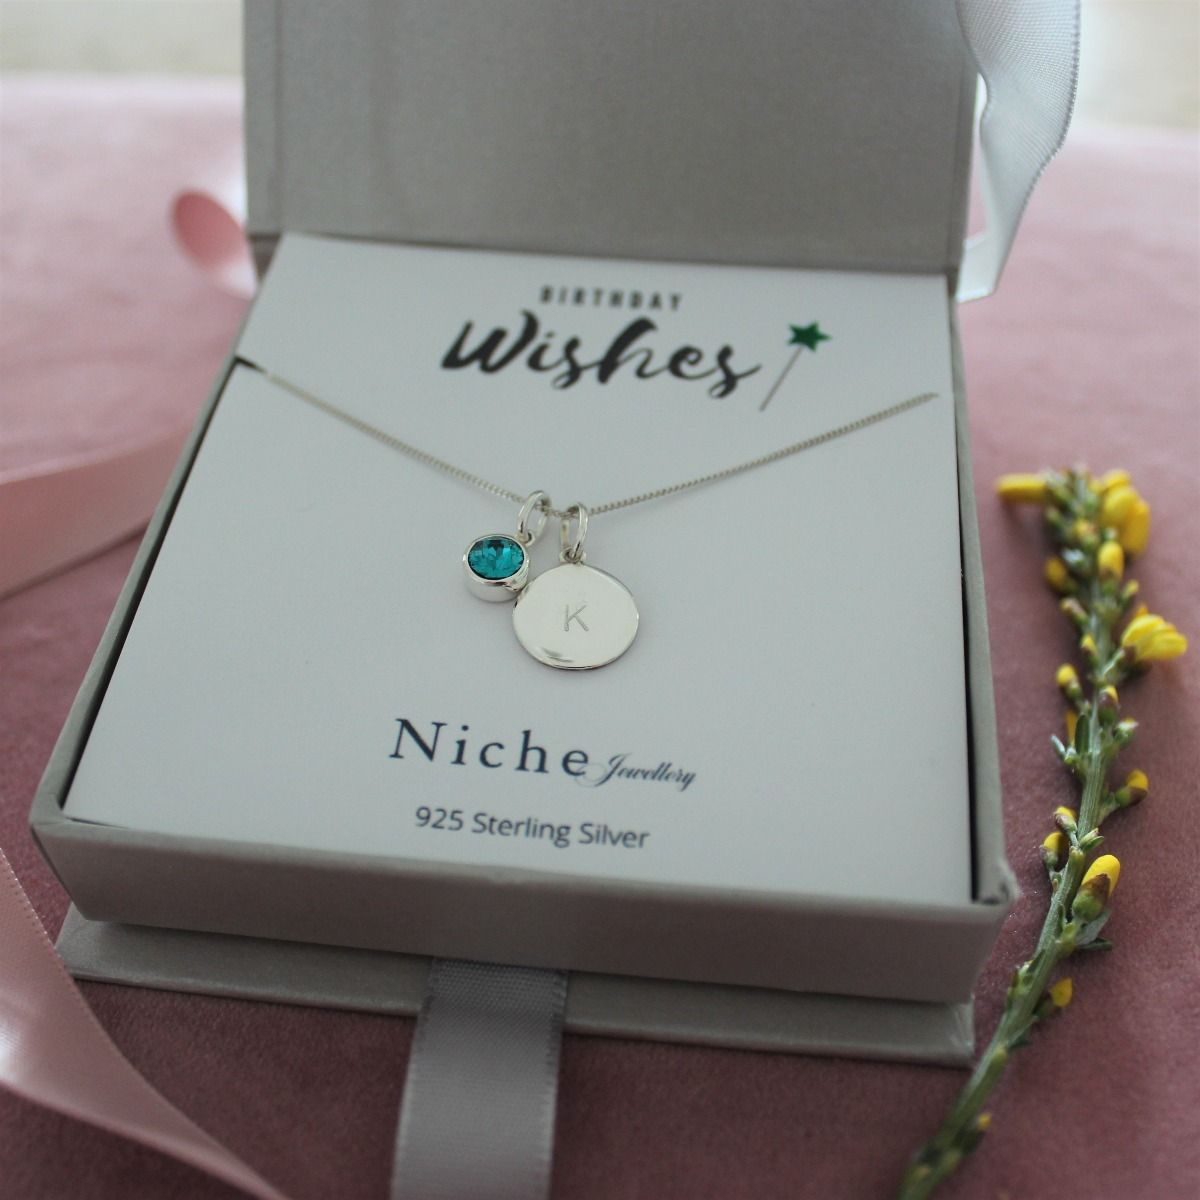 Packaging for birthday gifts and birthstone necklaces